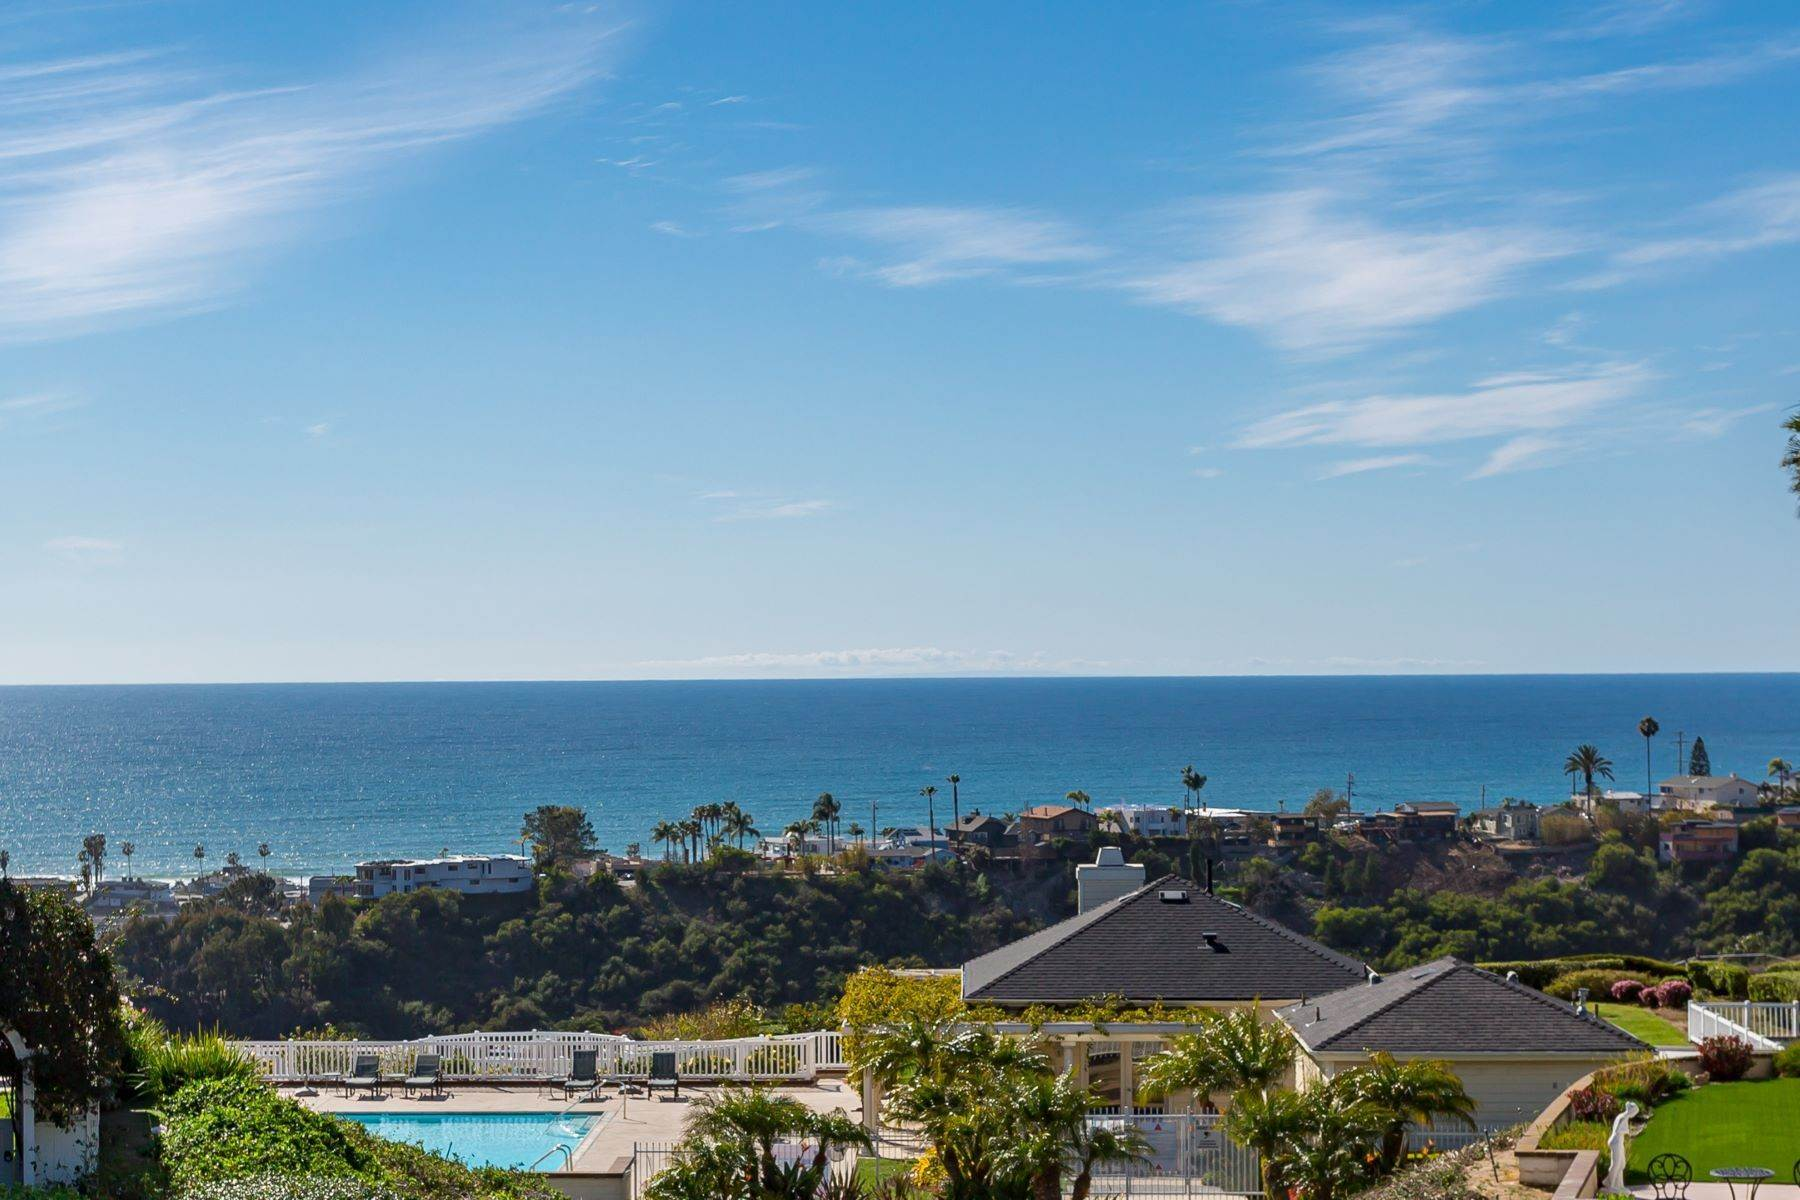 Single Family Homes for Sale at 1156 Wales Place, Cardiff by the Sea, CA 92007 1156 Wales Place Cardiff By The Sea, California 92007 United States